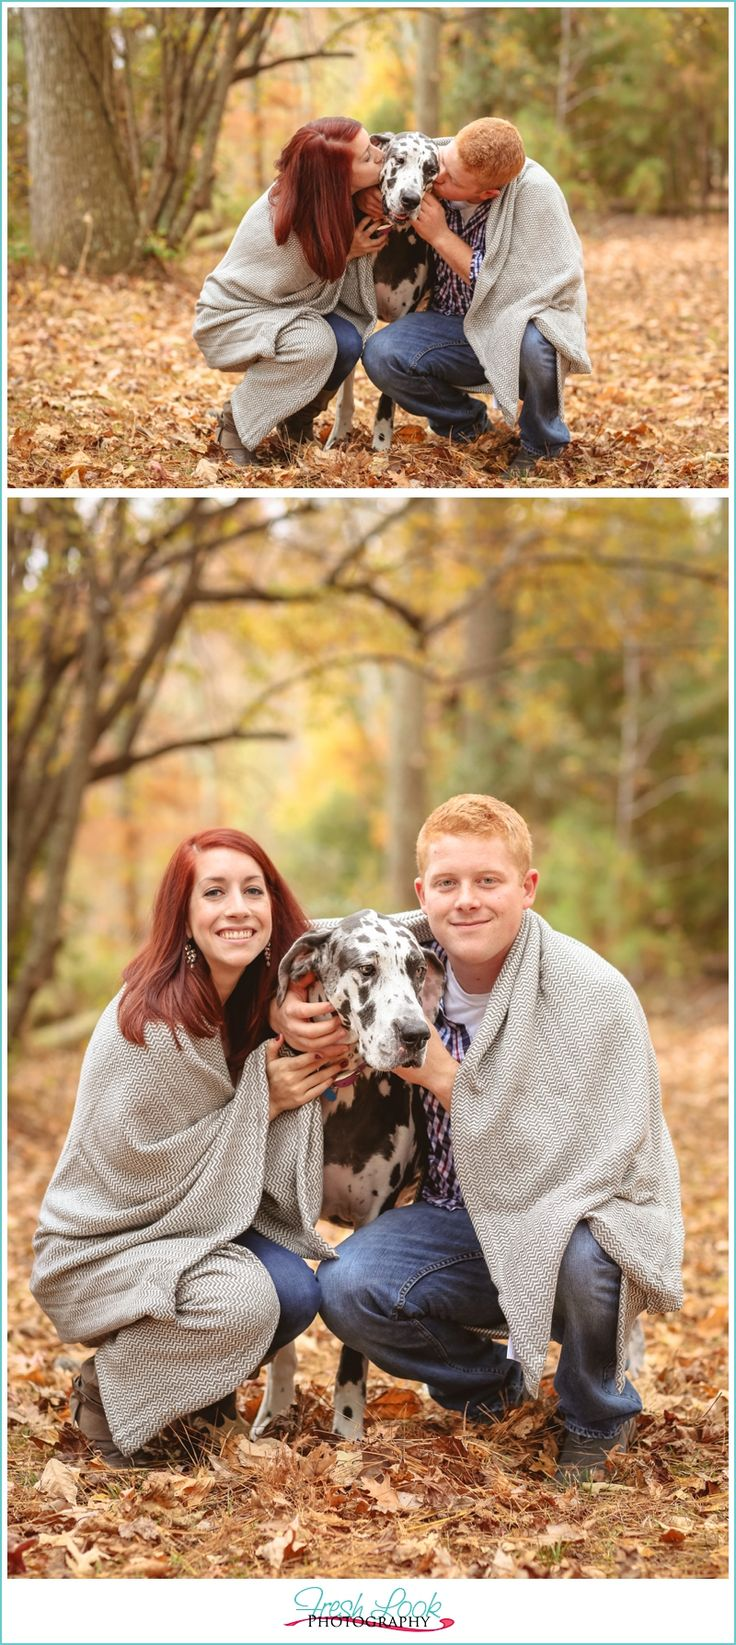 park date with the dog, couples photo shoot, Fresh Look Photography, fall photos, Stumpy Lake Natural Area, dogs are part of the family, love to love you